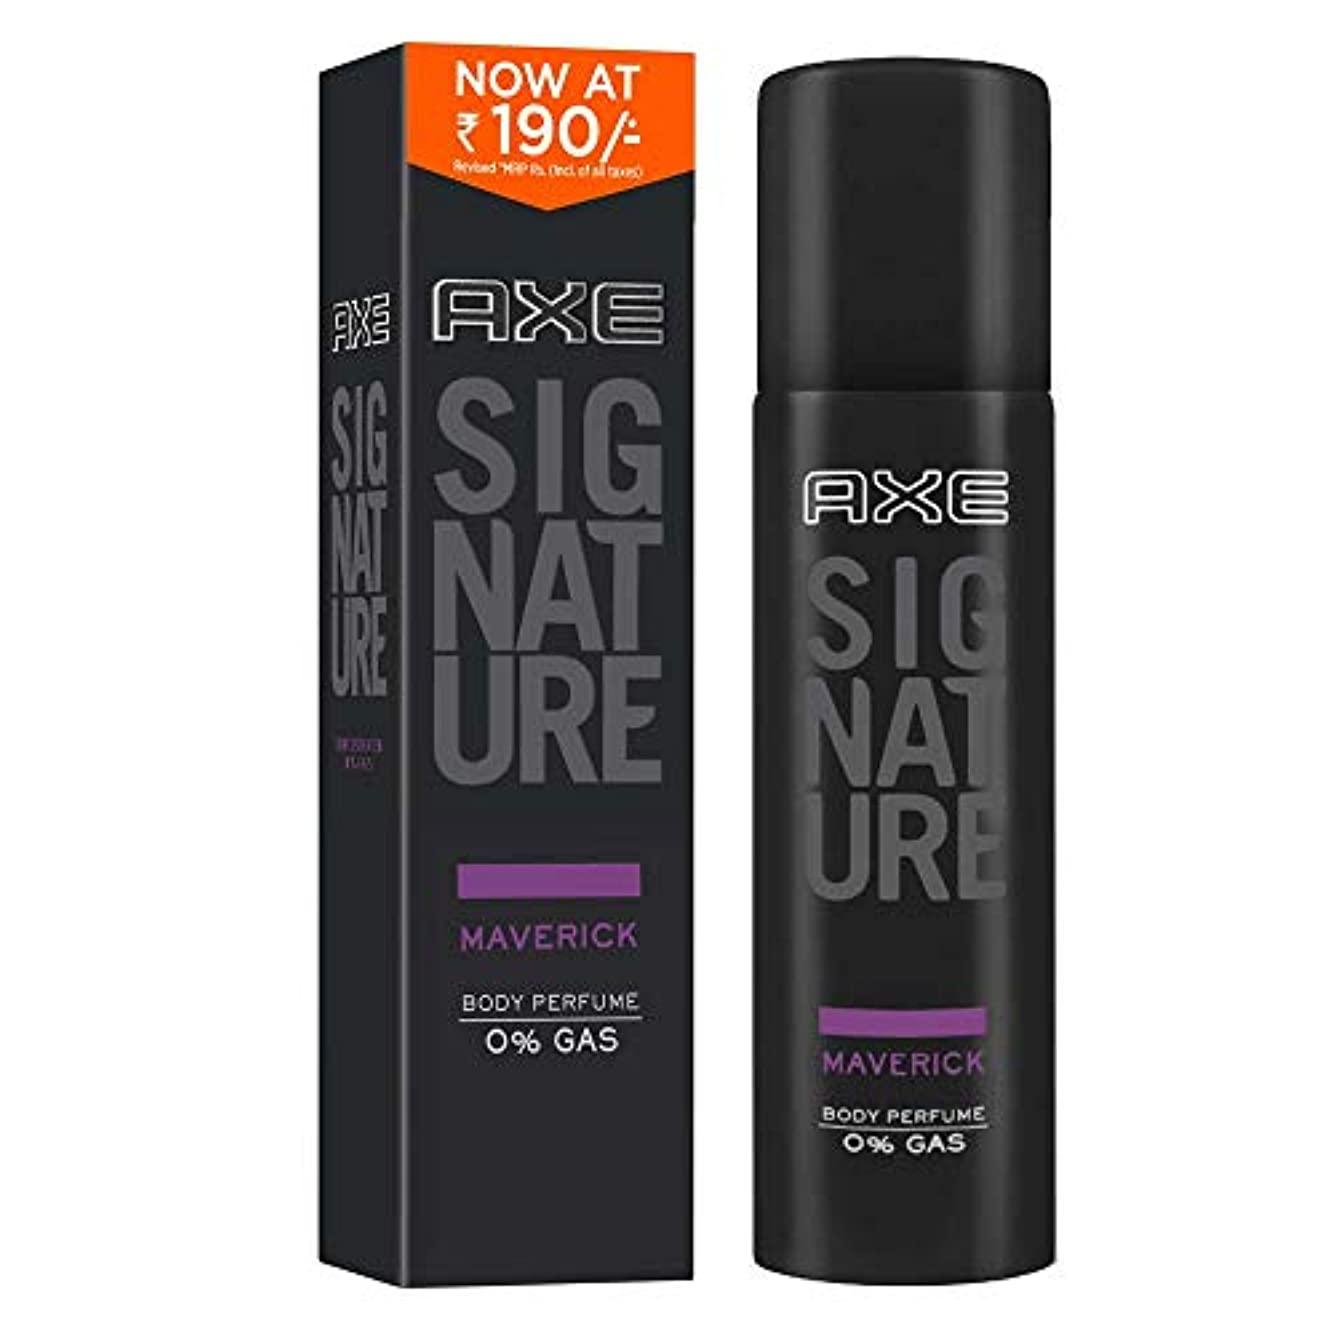 AXE Signature Maverick Body Perfume, 122 ml